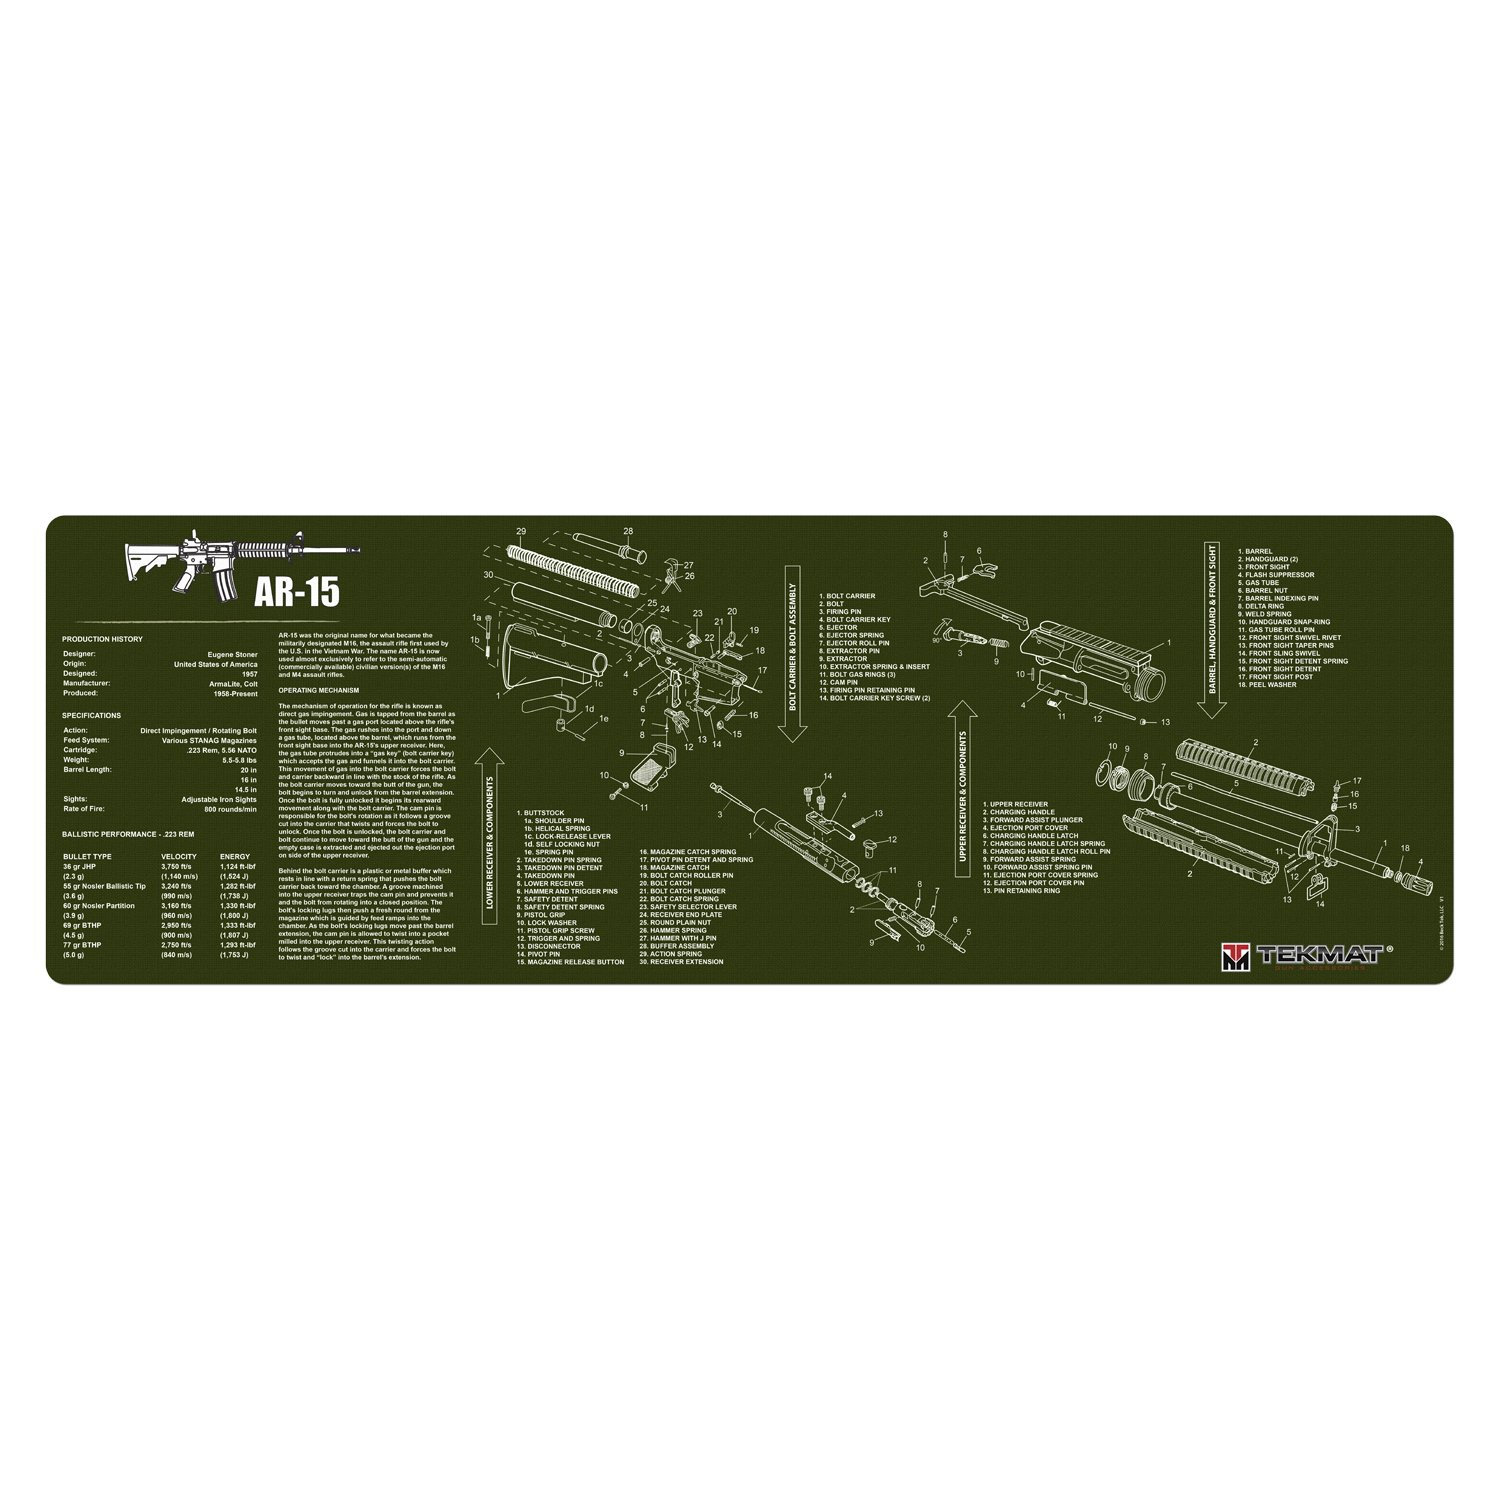 TekMat Gun Cleaning Mat for use with AR-15 - Olive